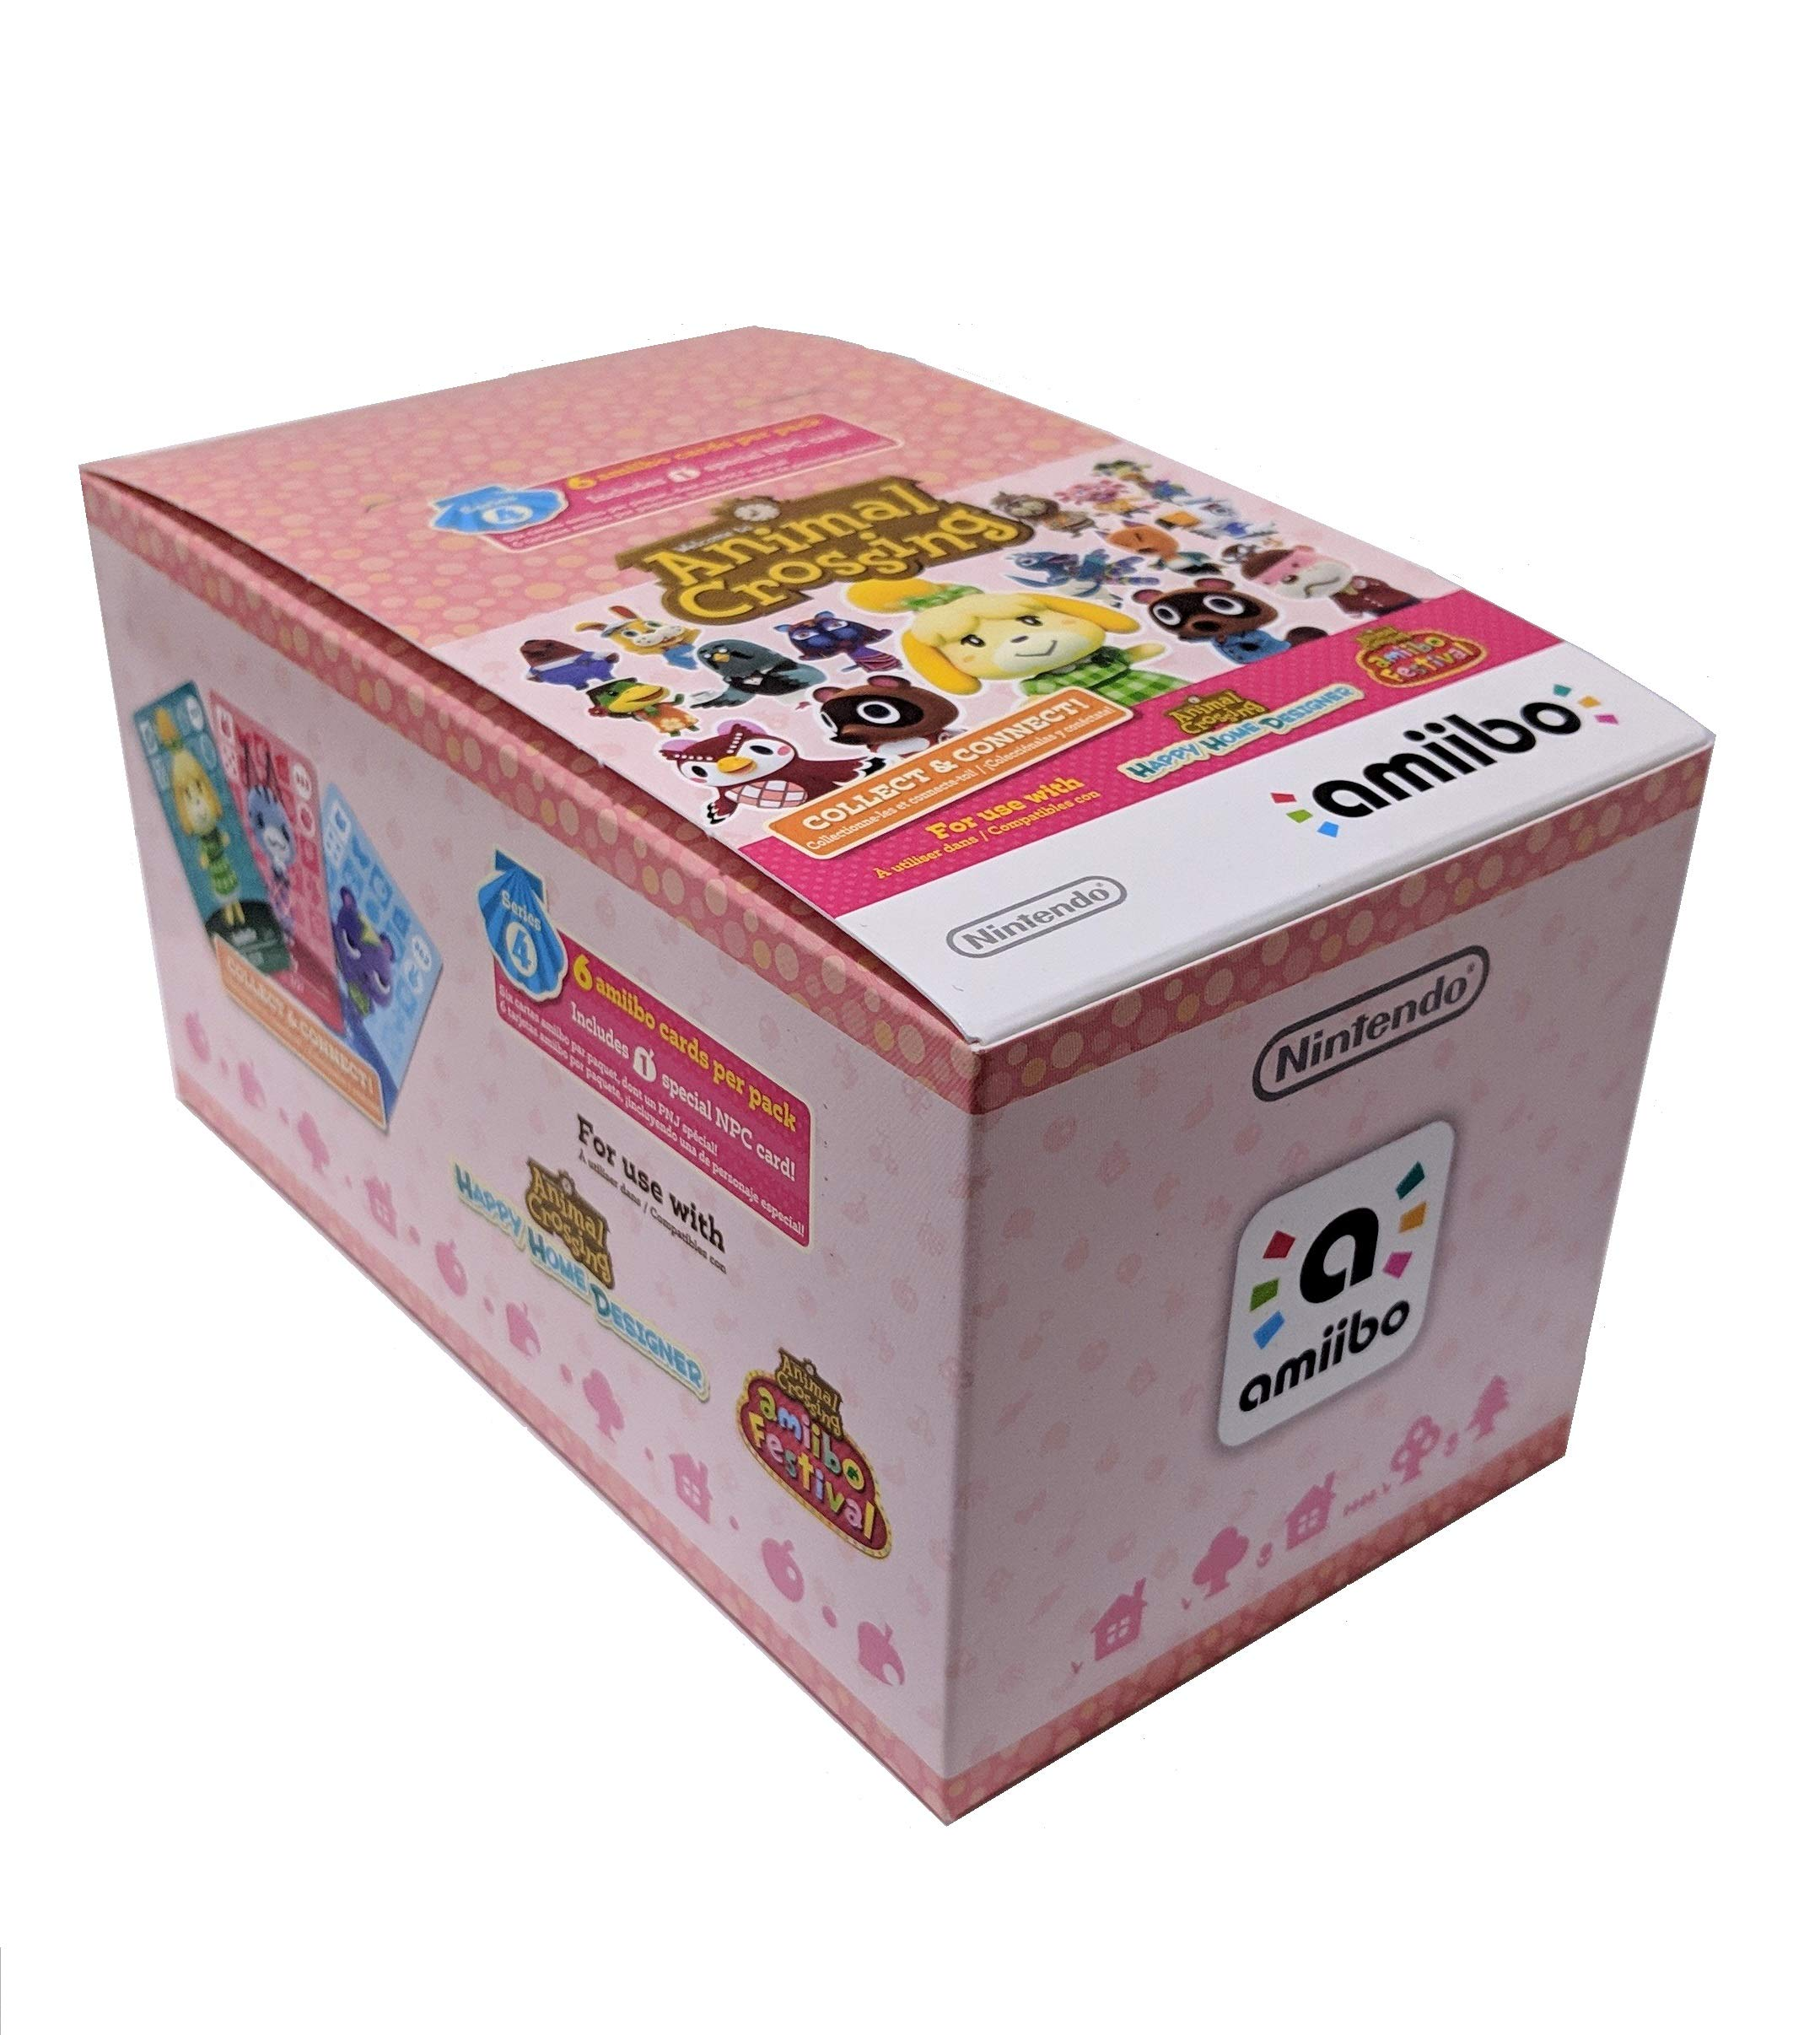 Animal Crossing Amiibo Cards Series 4 - Full box (18 Packs) (6 Cards Per Pack/108 Cards) ... by Nintendo (Image #2)